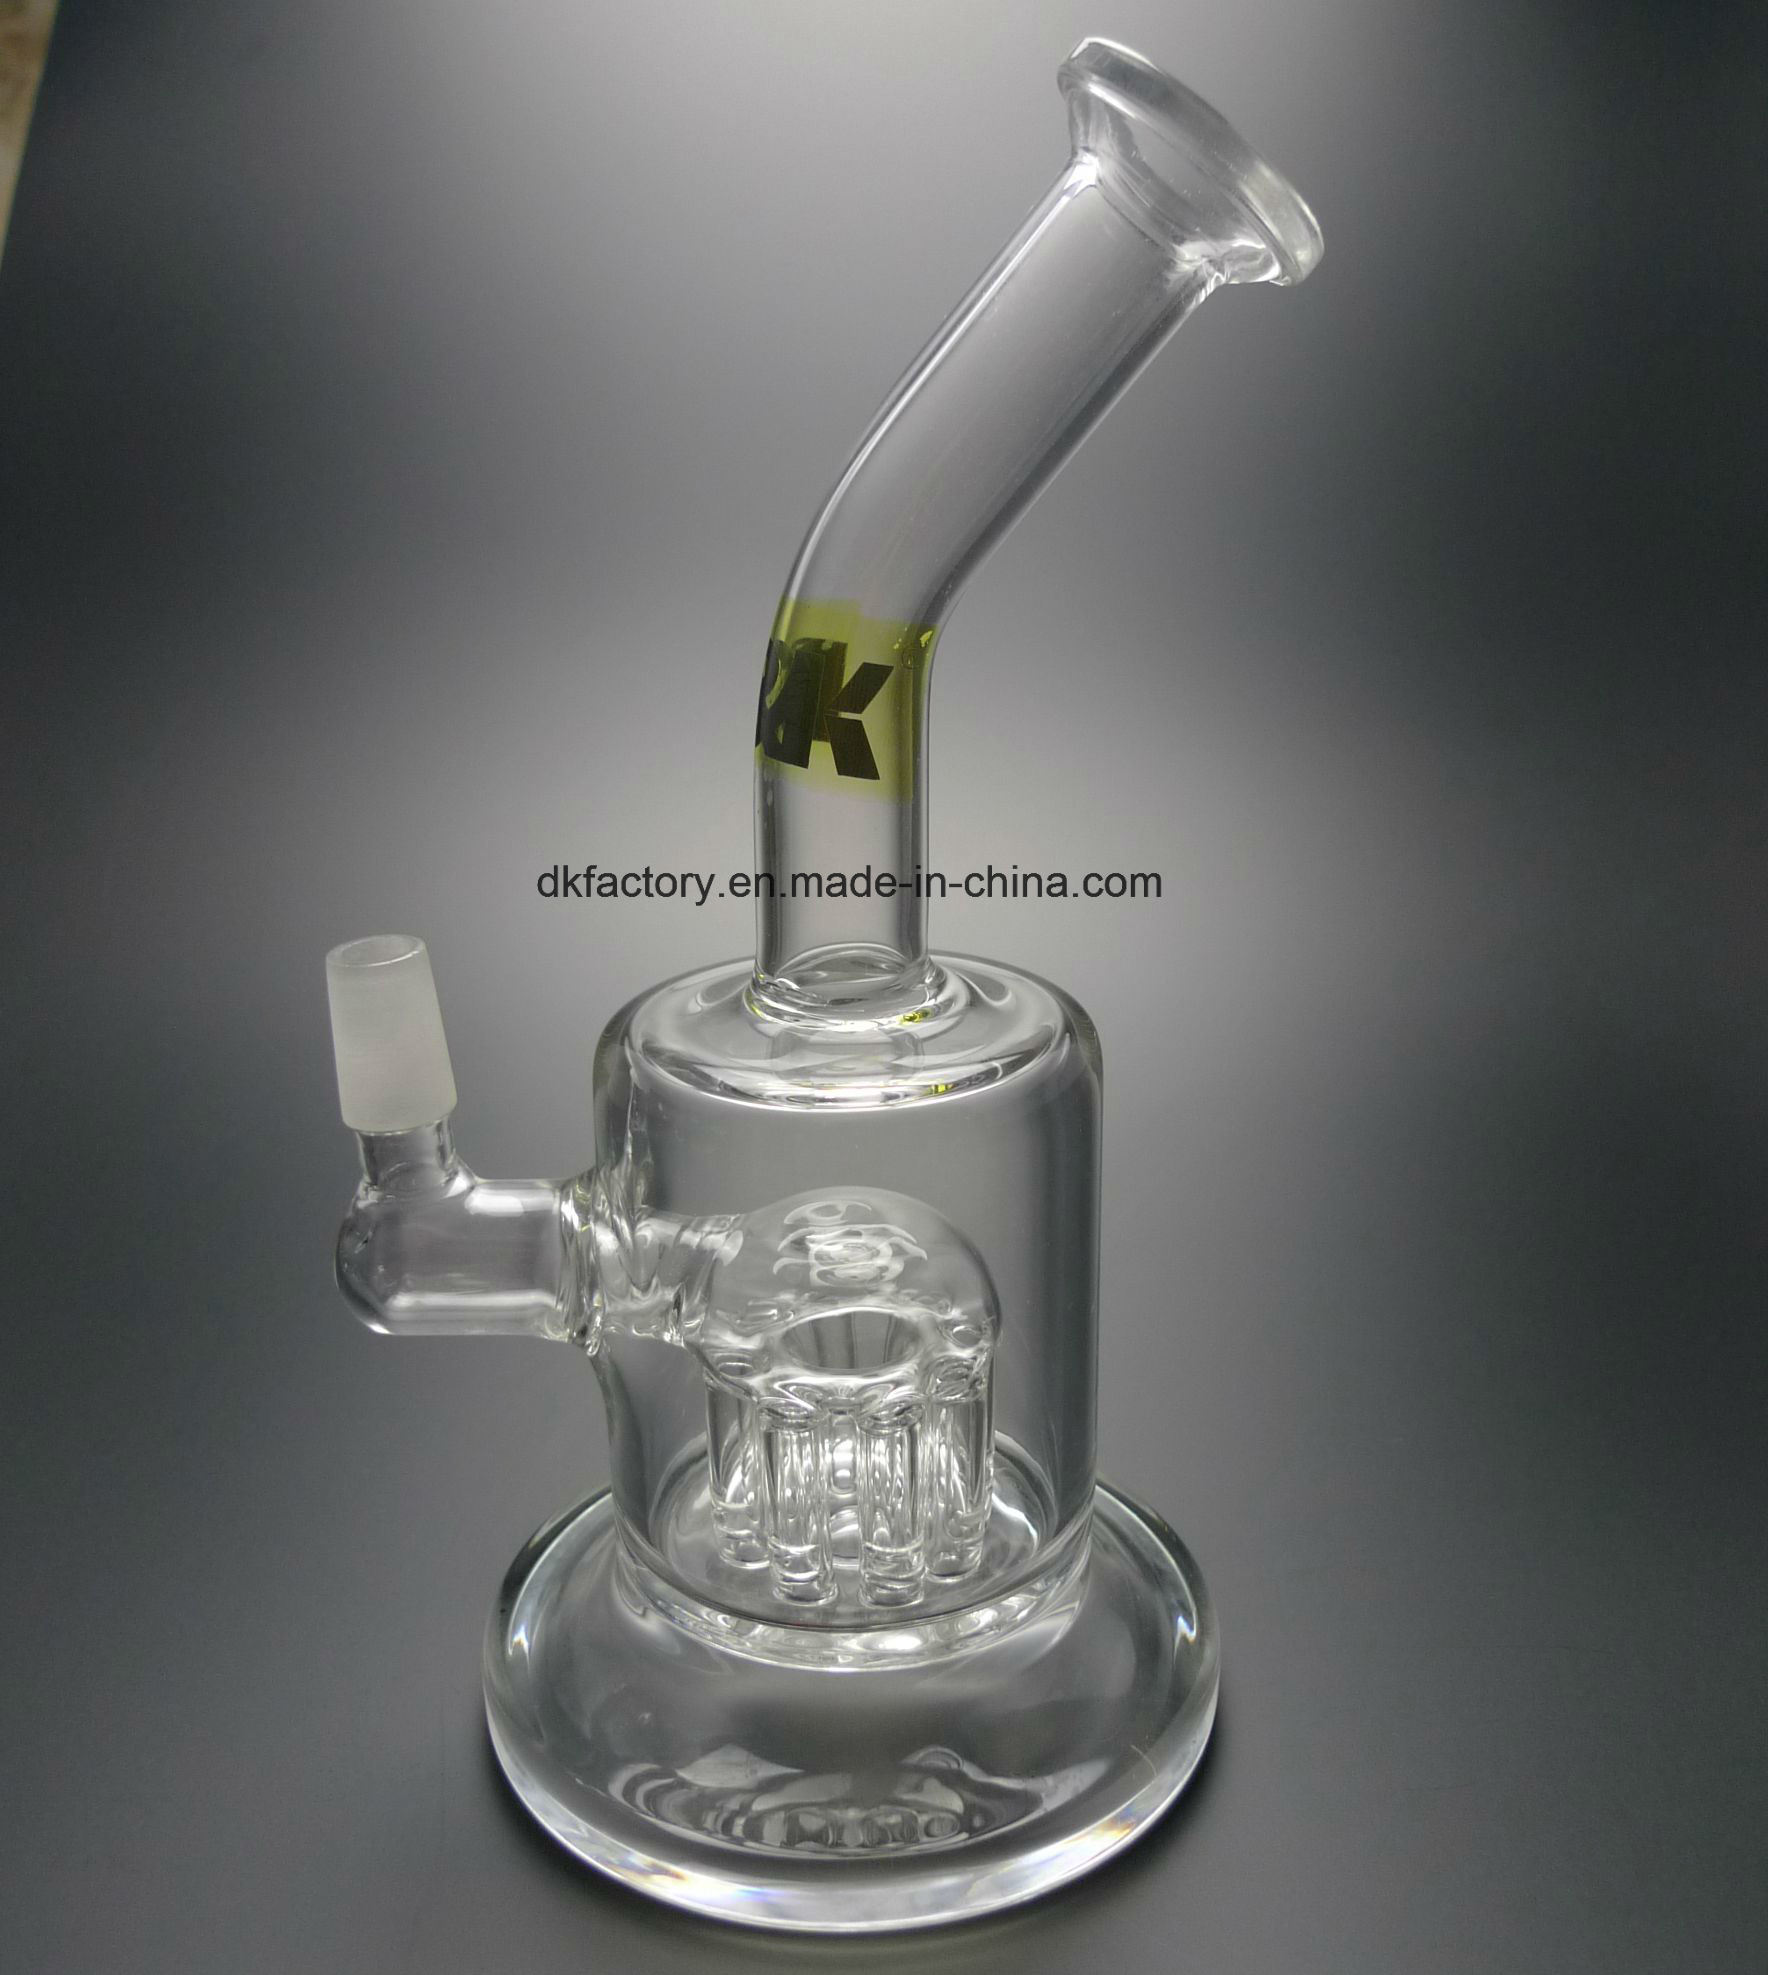 Newest Design Glass Smoking Water Pipe D&K Glass pipe